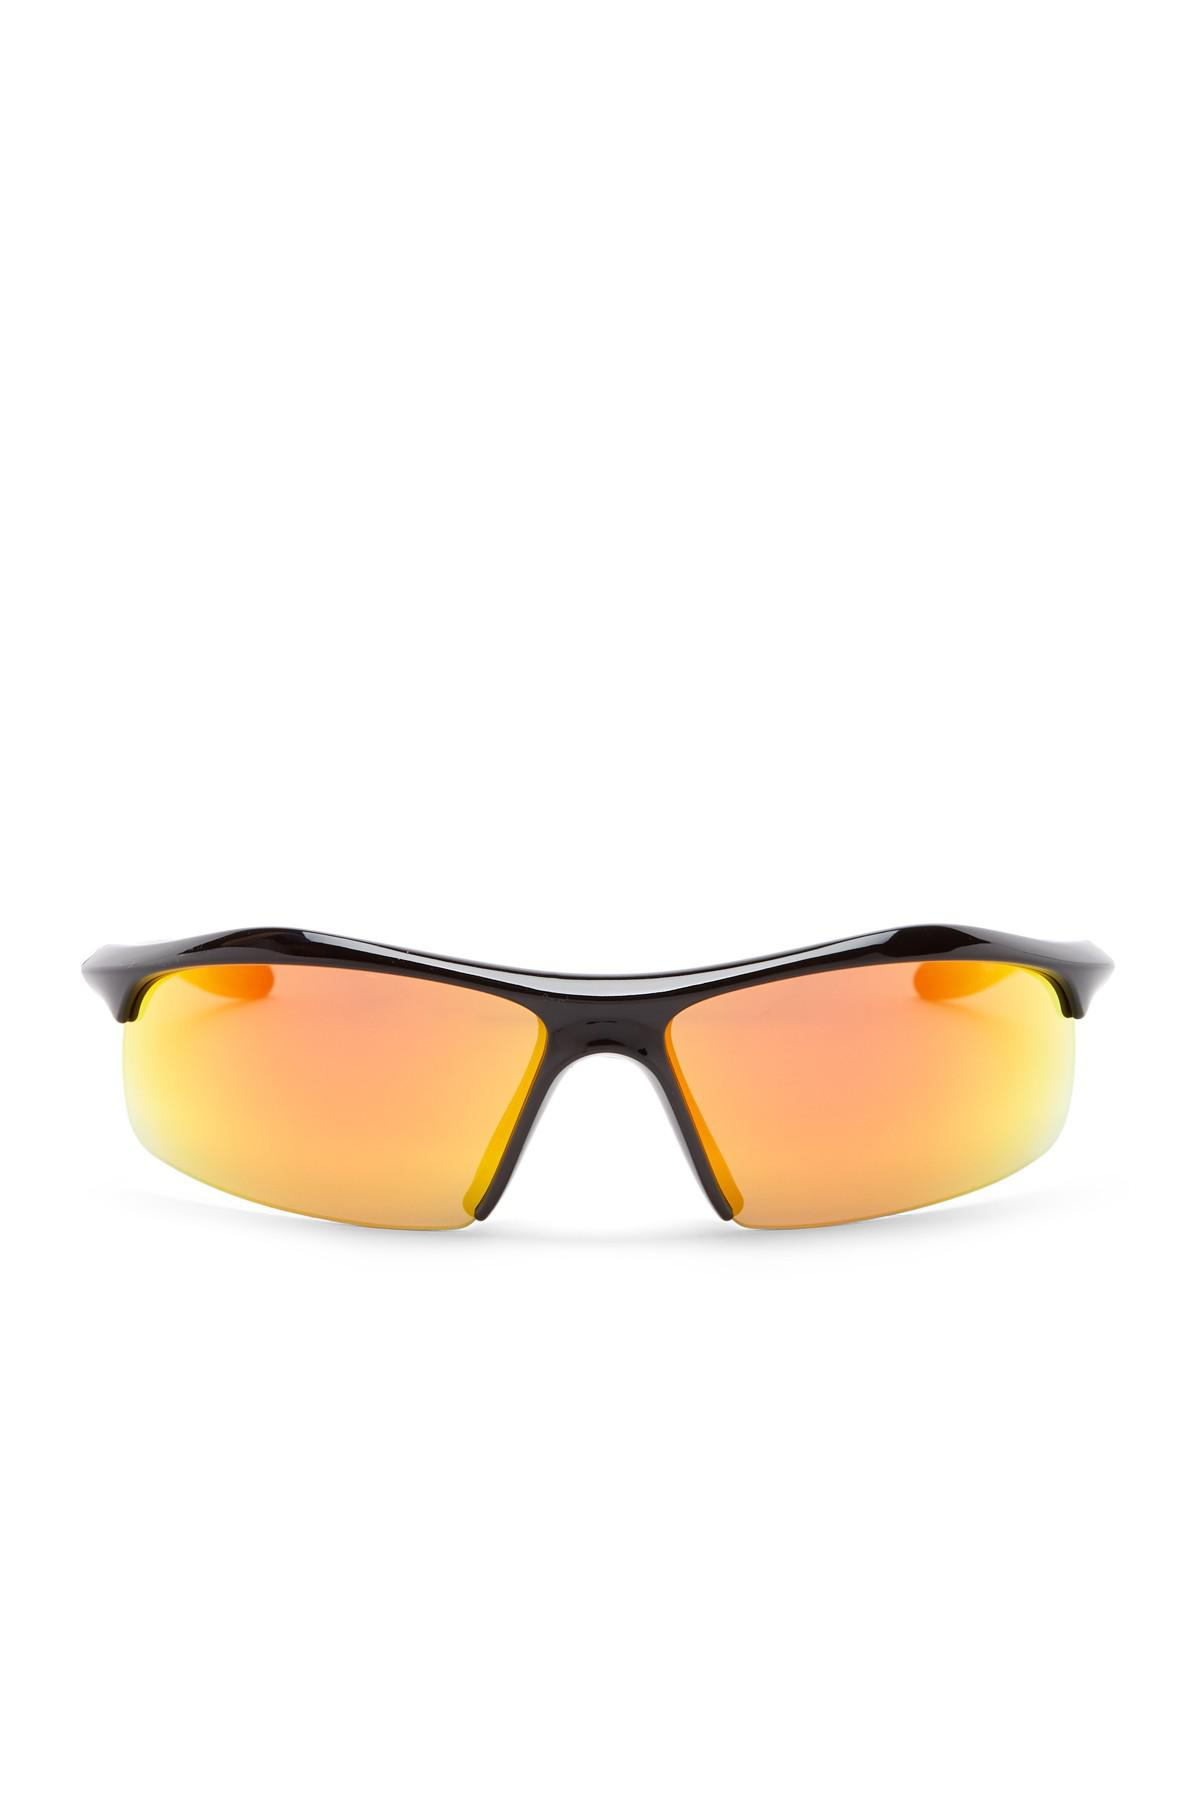 428dffcbe8 Lyst - Under Armour Zone 69mm Sunglasses in Black for Men